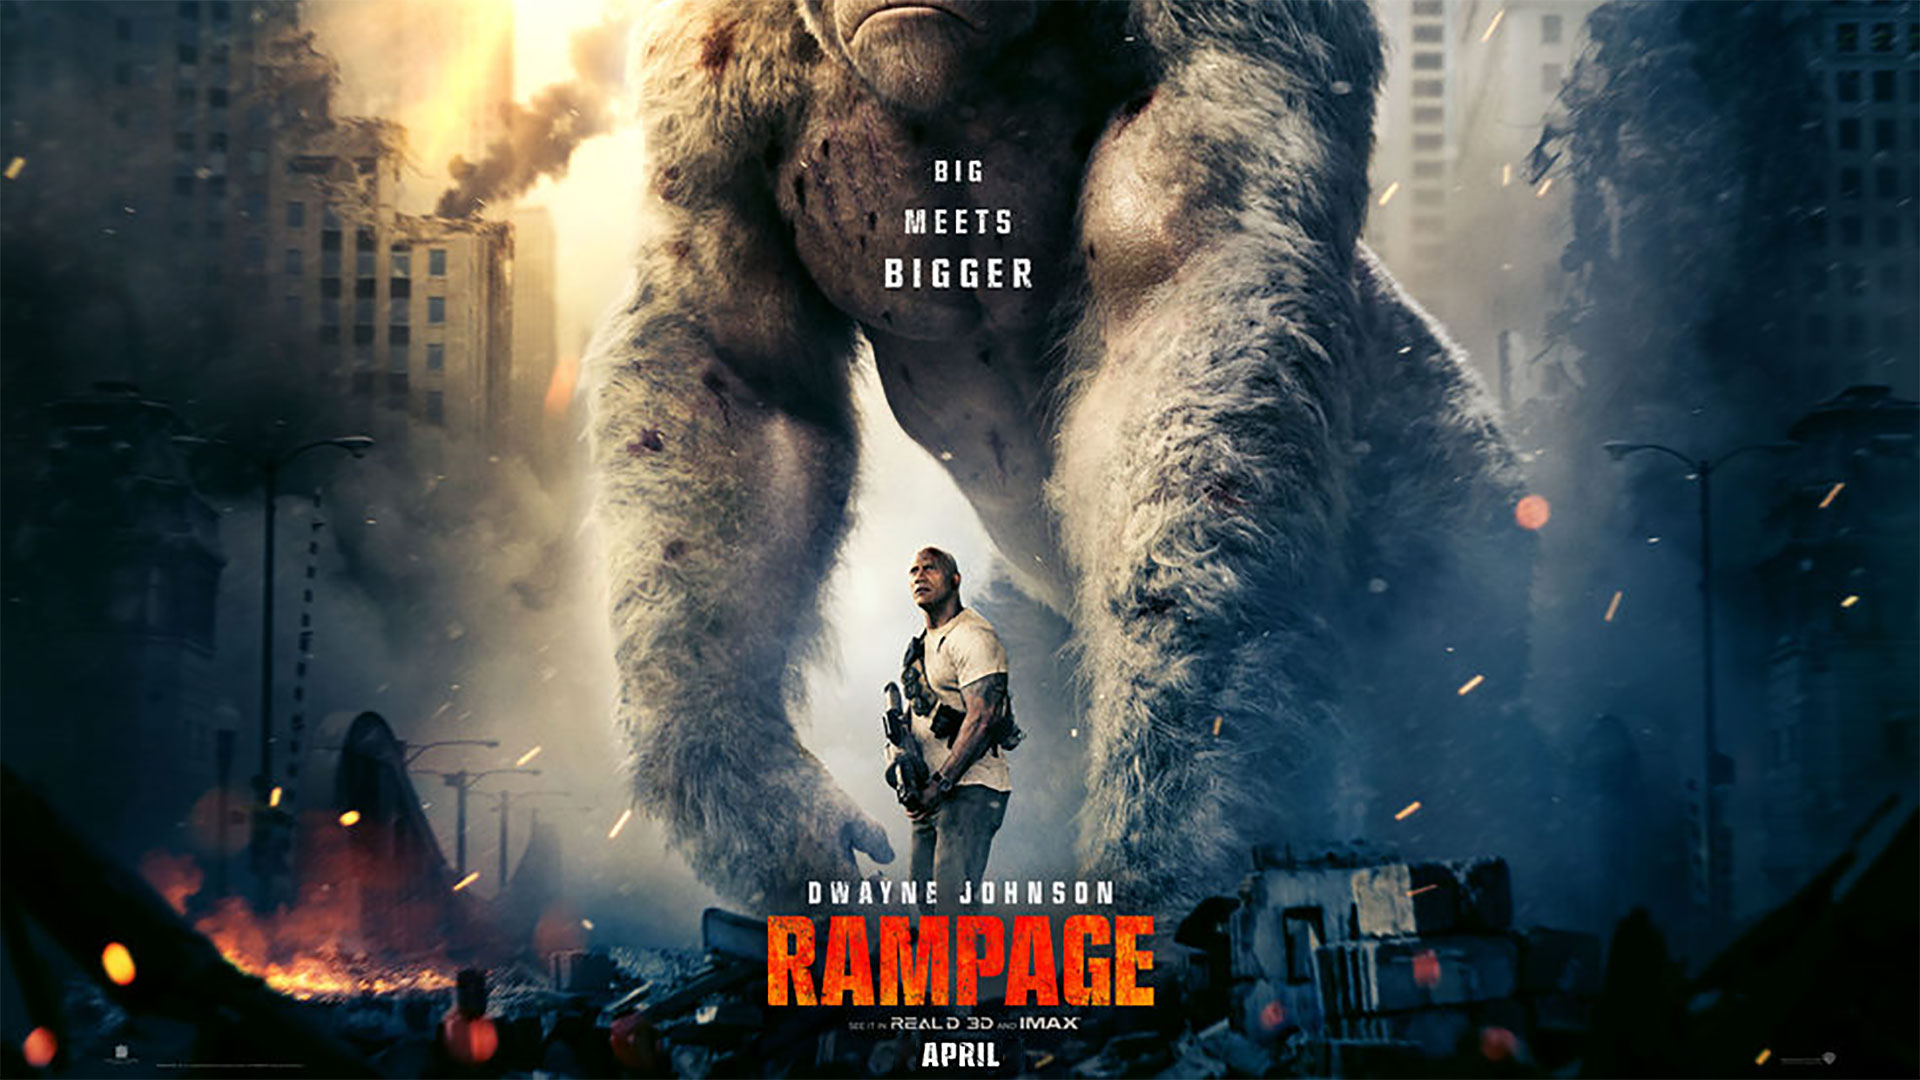 'Rampage' - landscape artwork